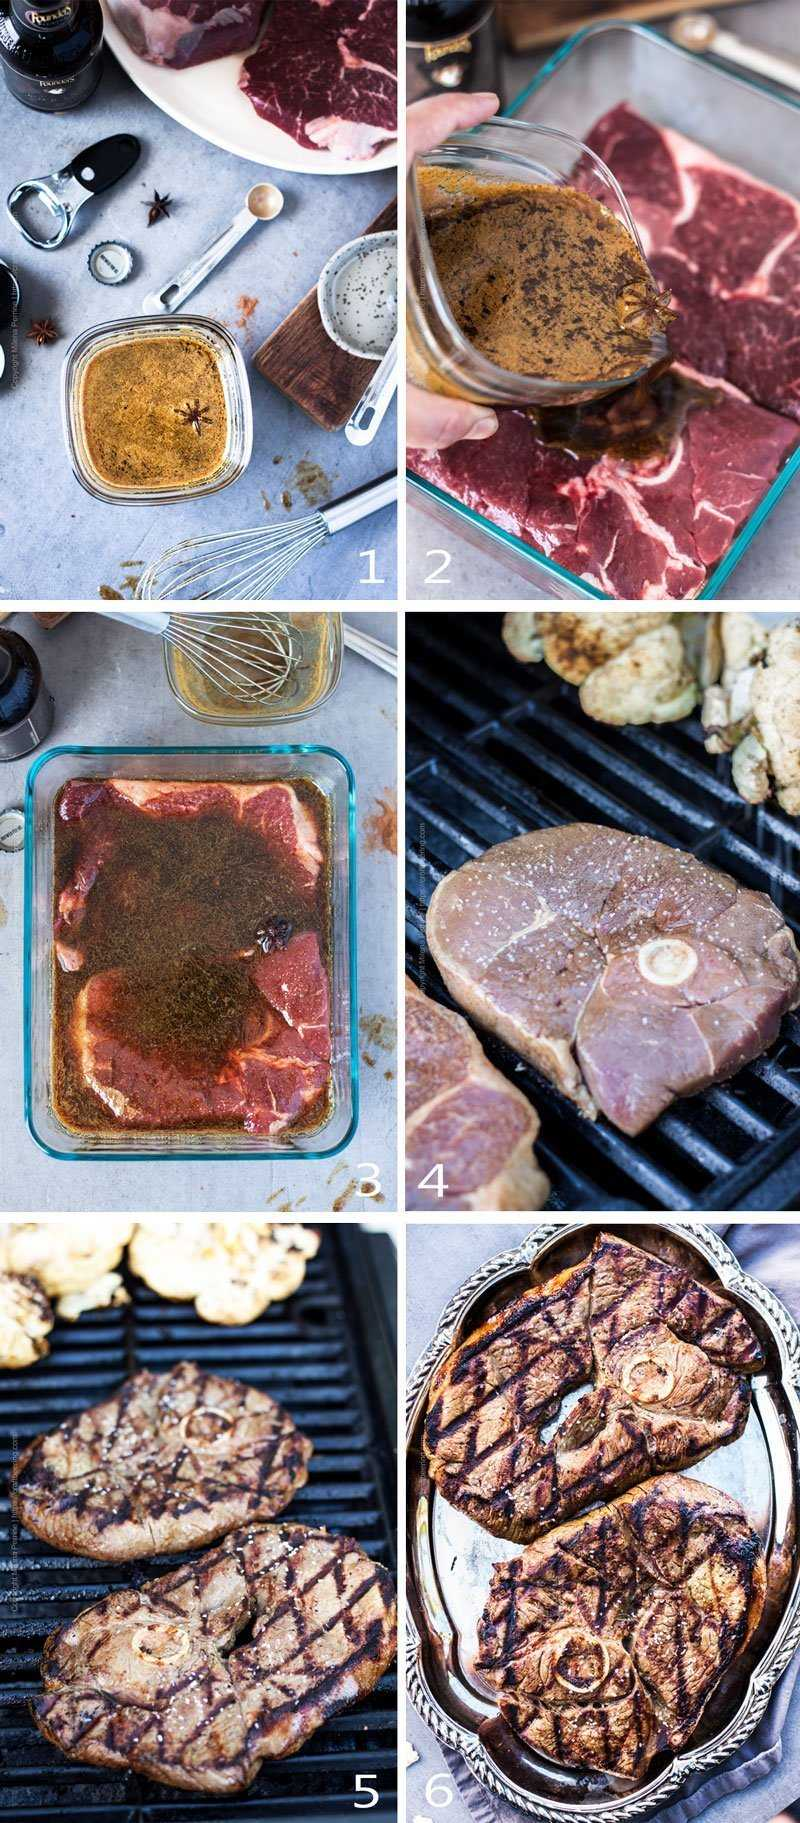 Step by step image grid showing how to marinated and grill lamb steaks